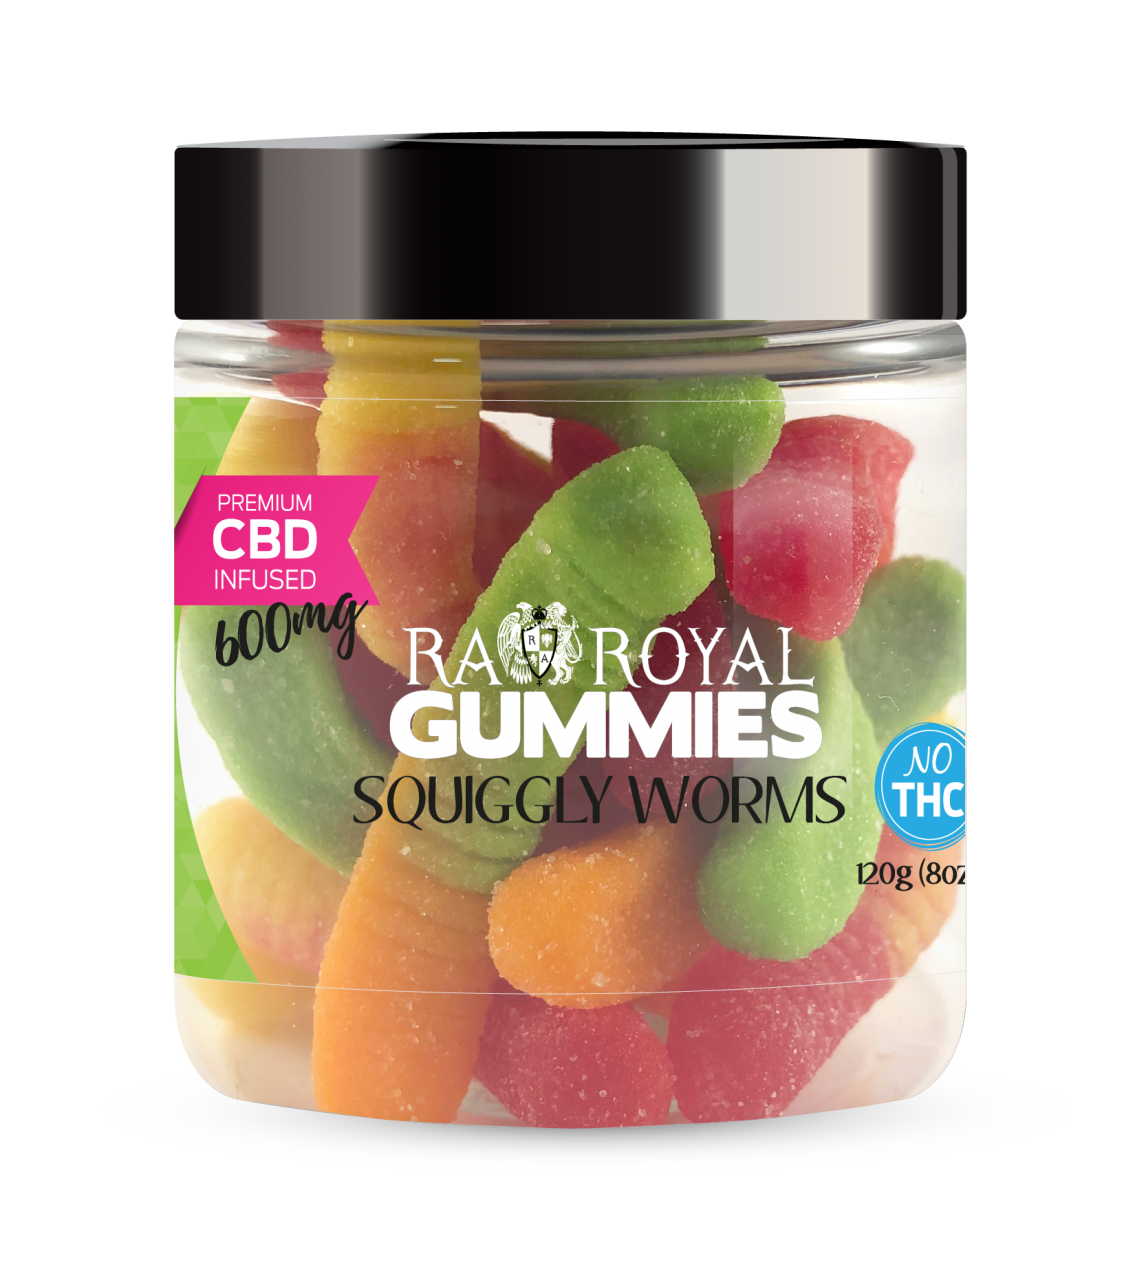 R.A. Royal Gummies – 600MG CBD Infused Squiggly Worms